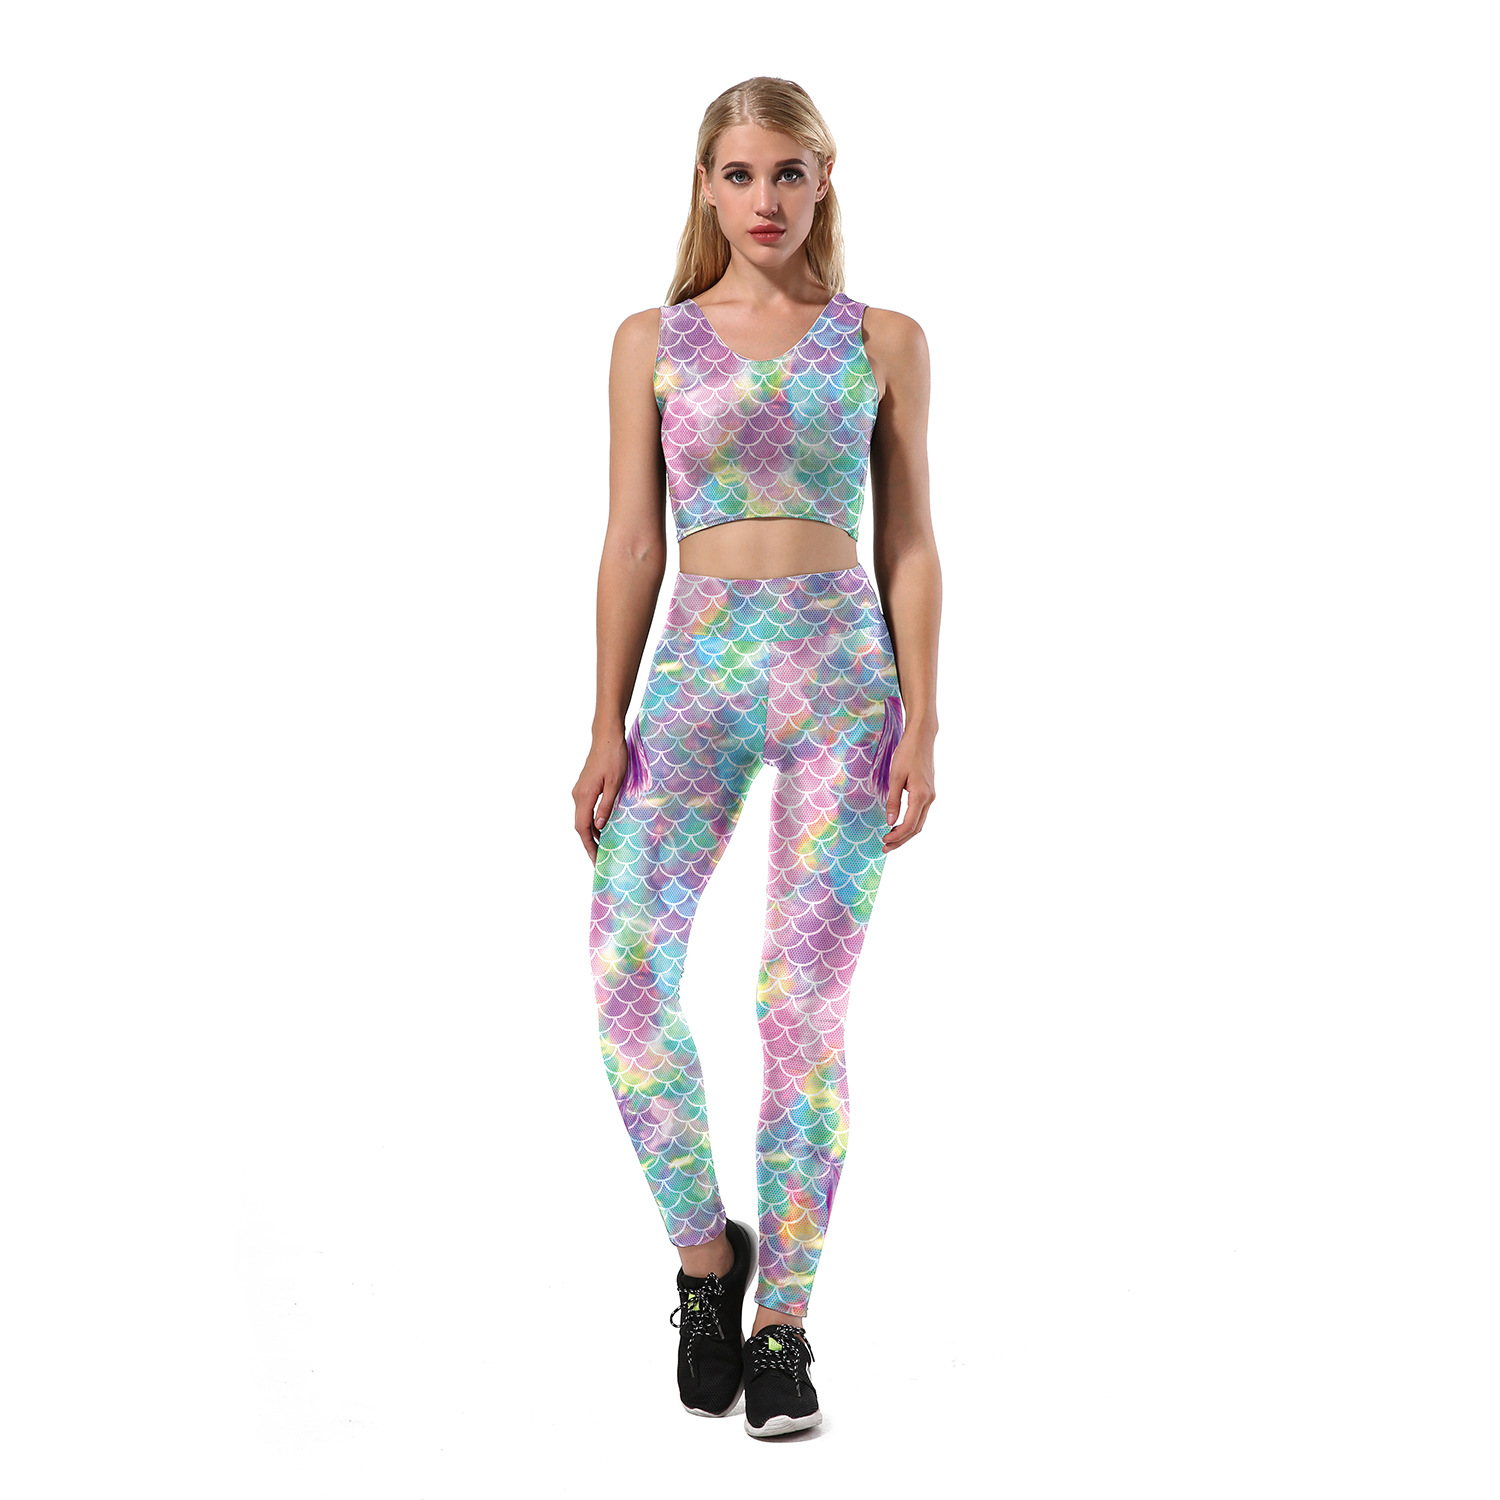 Summer New European And American-Style Hot Selling Origional 3D Digital Printed Mermaid Set Vest High-waisted Athletic Pants